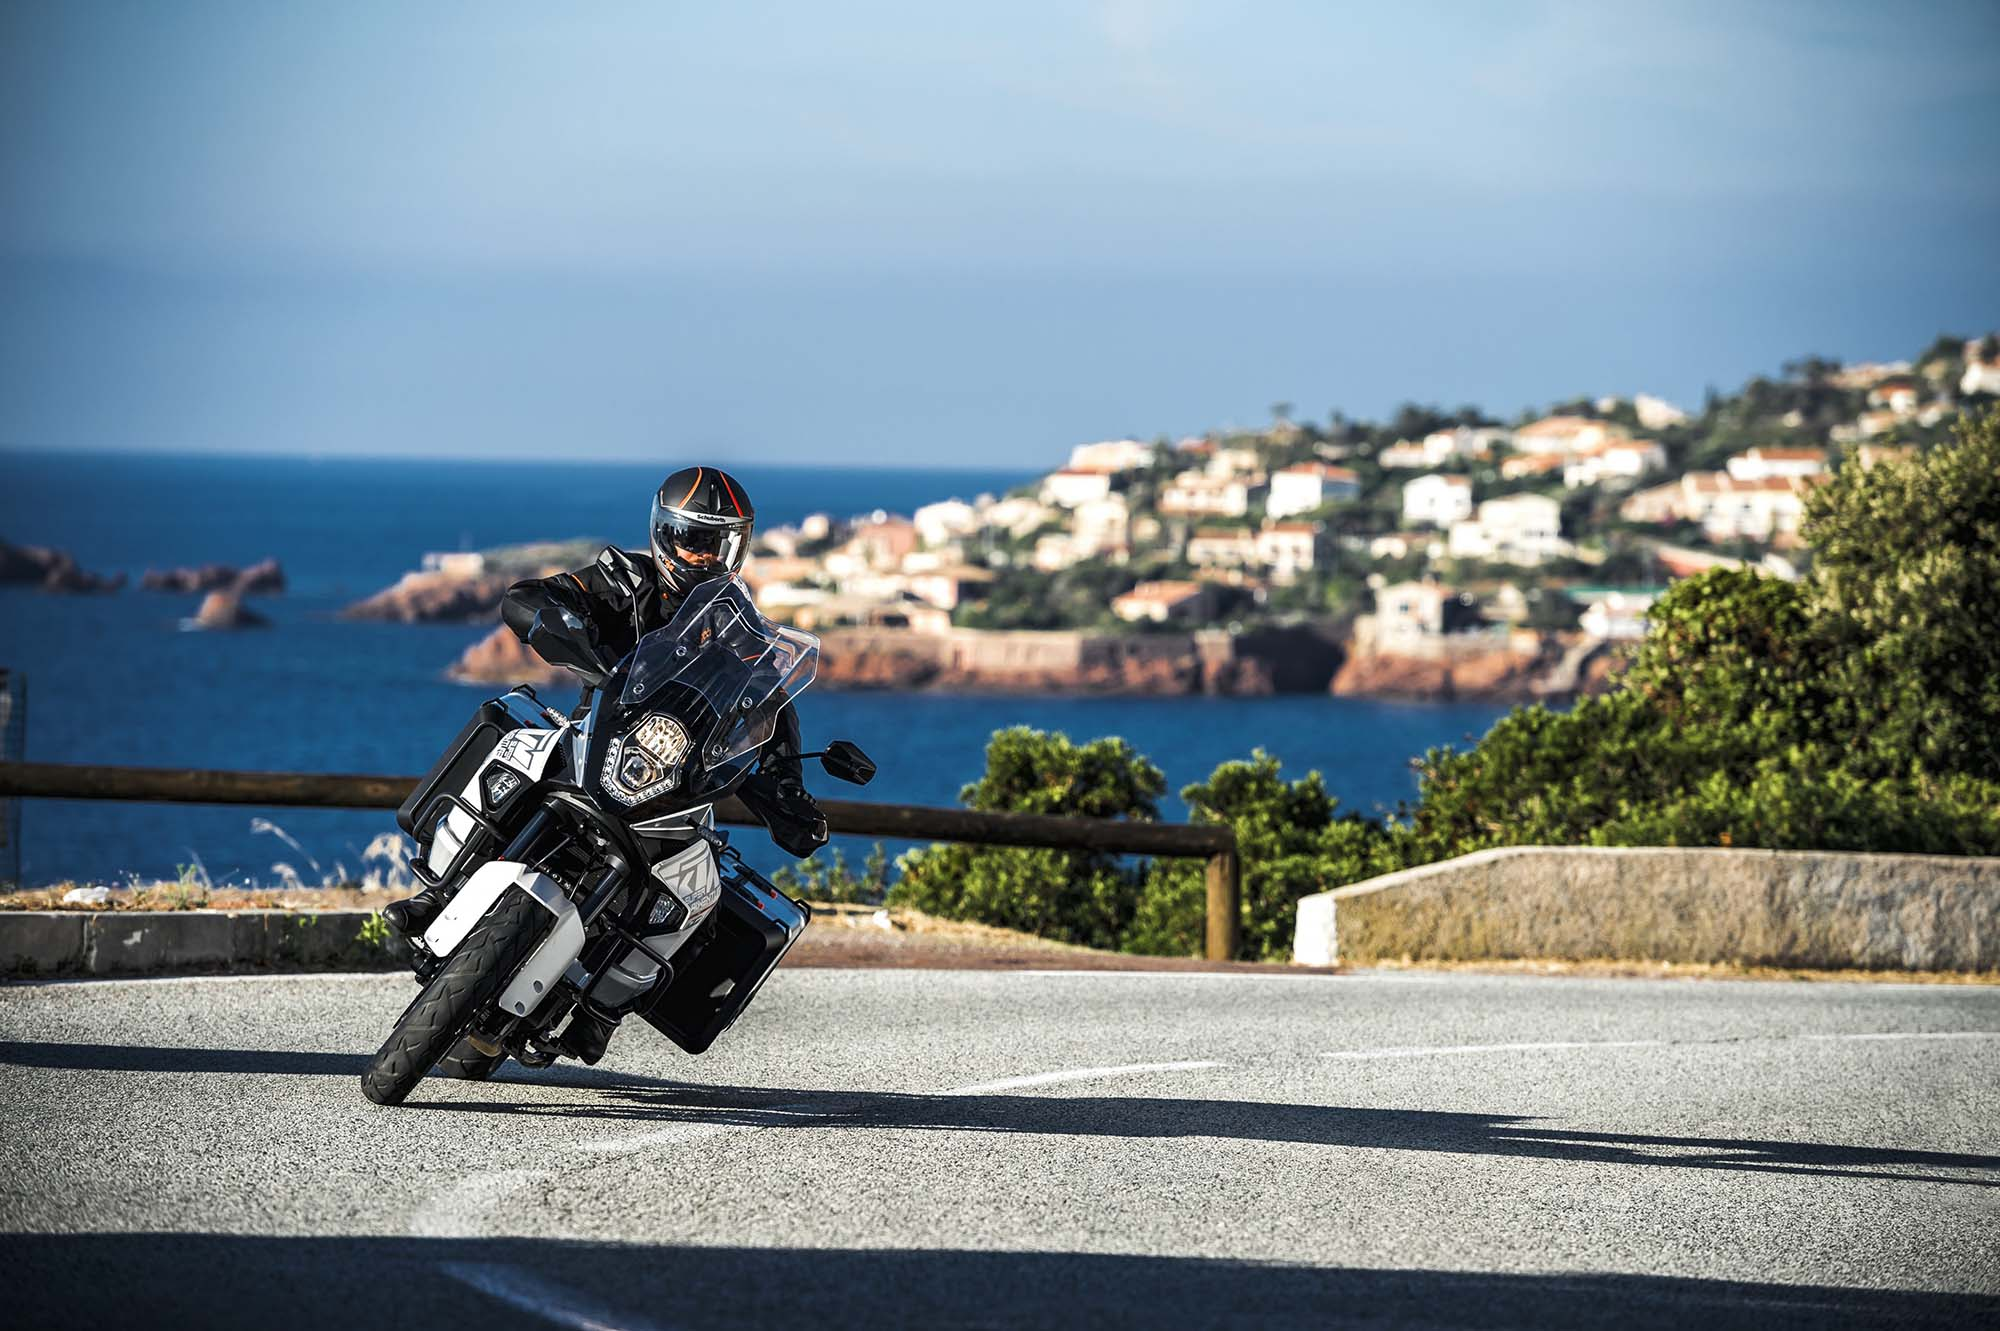 Ktm Duke 1290 >> 2015 KTM 1290 Super Adventure - Even with 180hp, Is This the Safest Motorcycle in the World ...